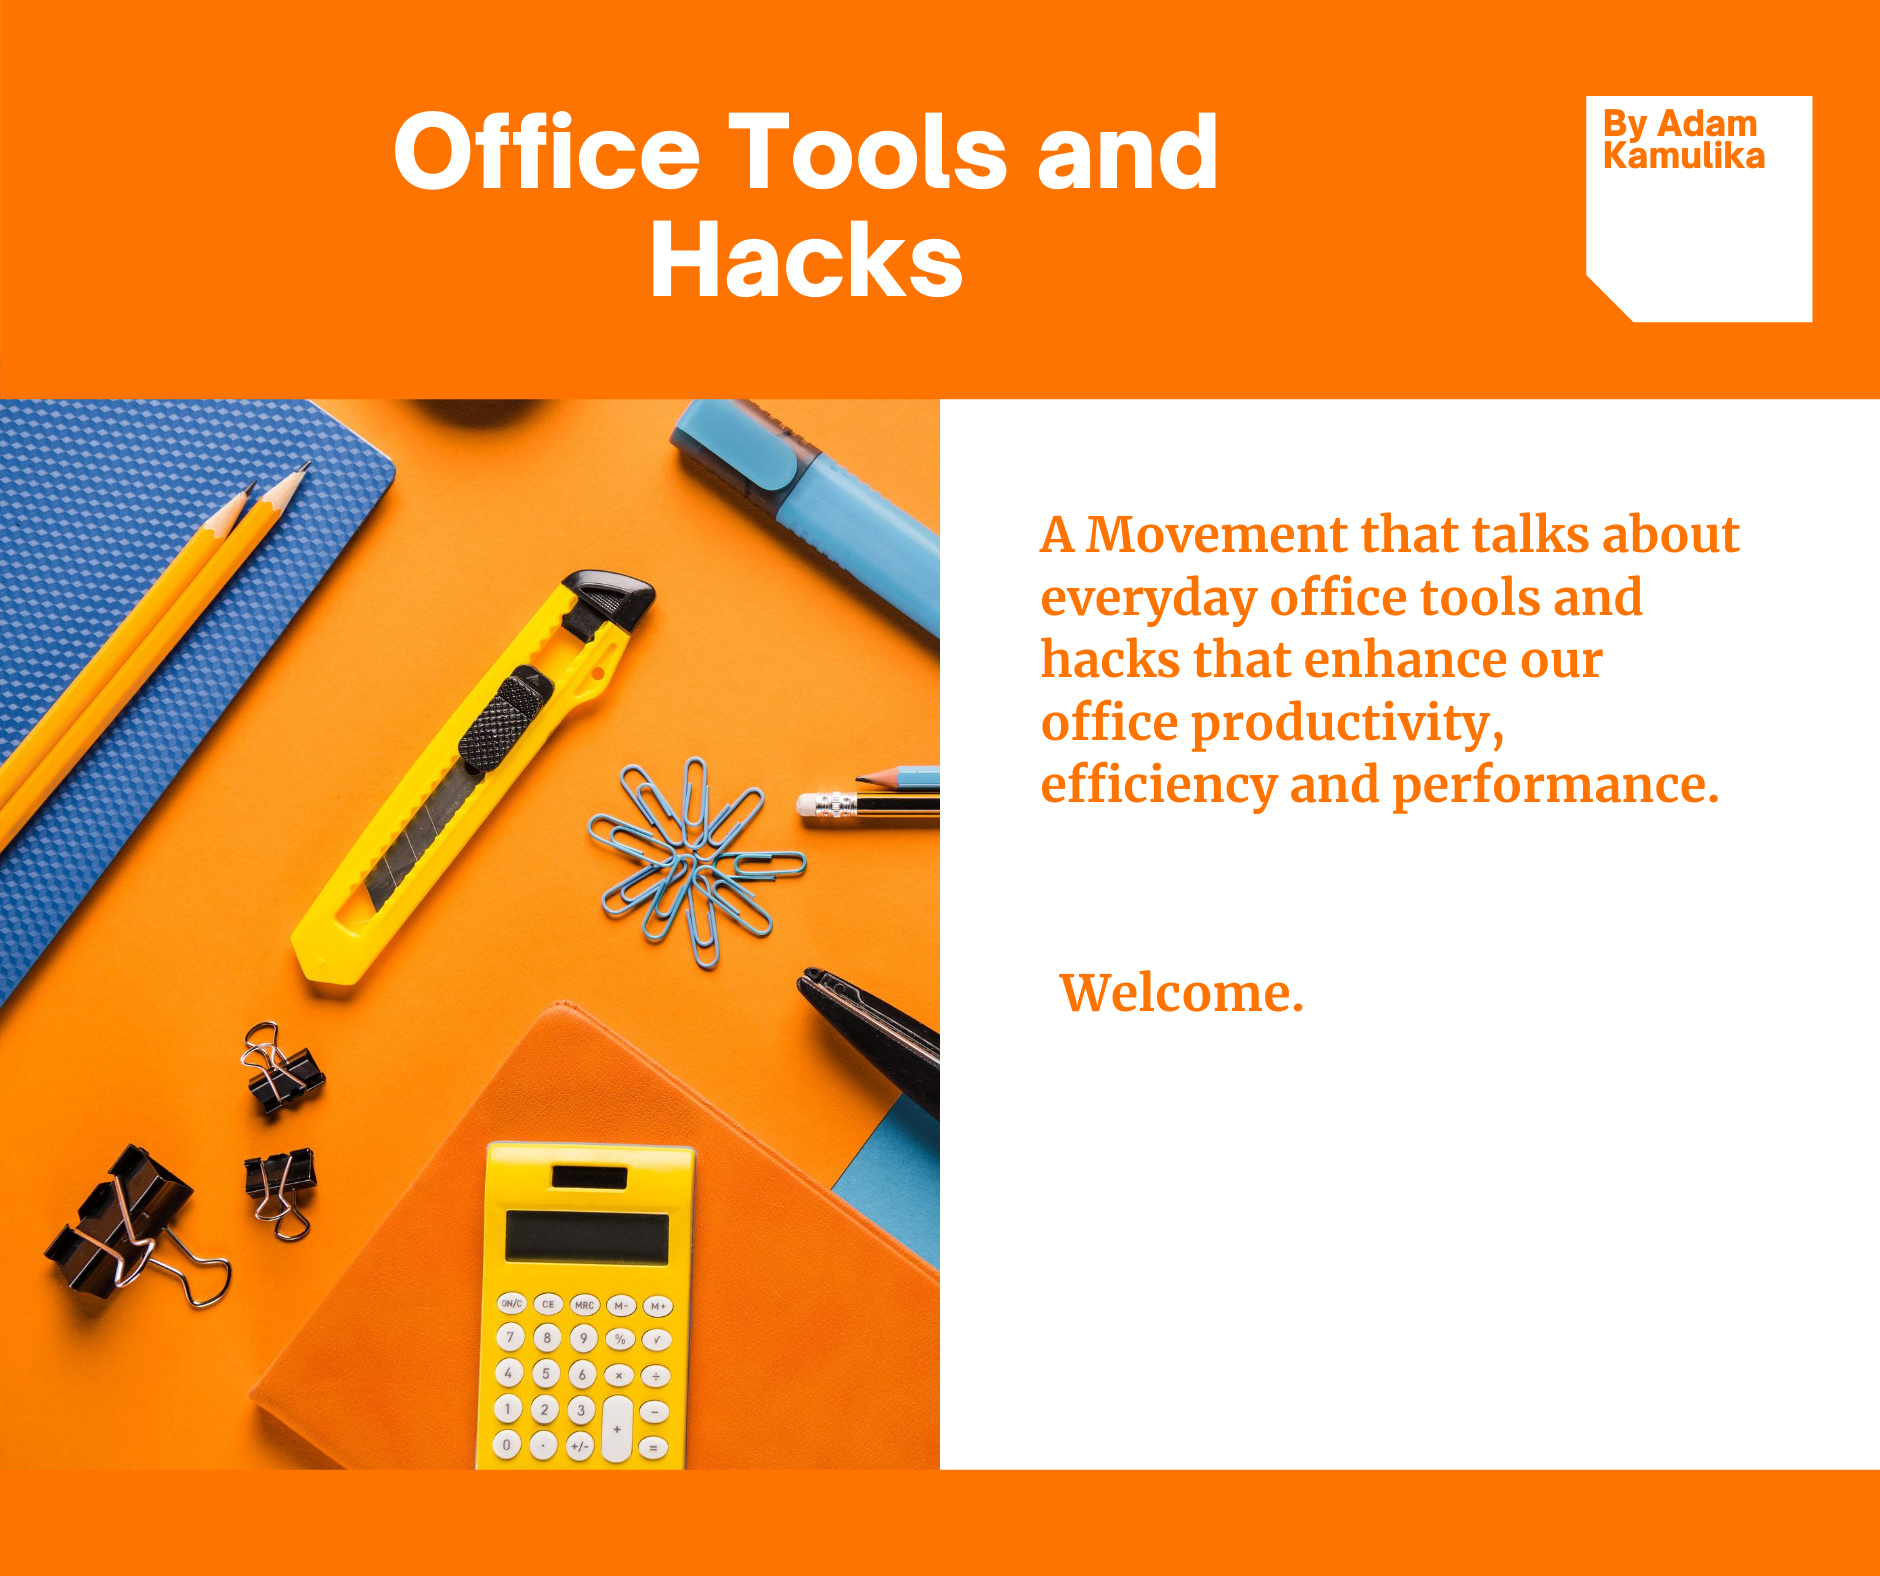 Office tools and hacks